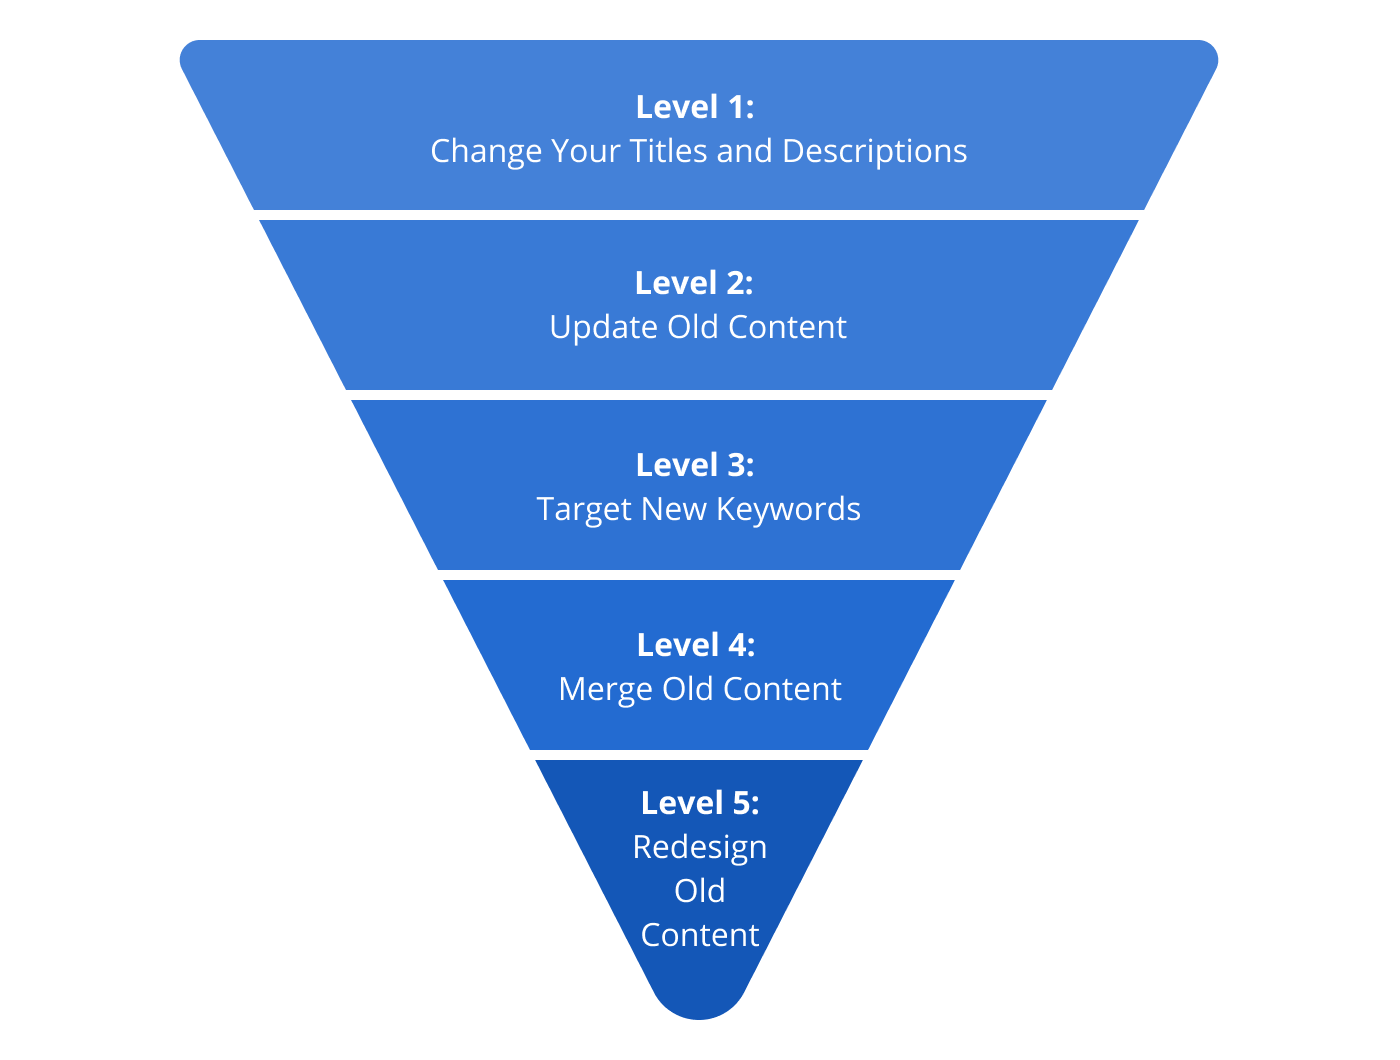 Methods of Content Refreshing: Level 1- Change Your Titles and Descriptions; Level 2- Update Old Content; Level 3- Target New Keywords; Level 4- Merge Old Content; Level 5- Redesign Old Content